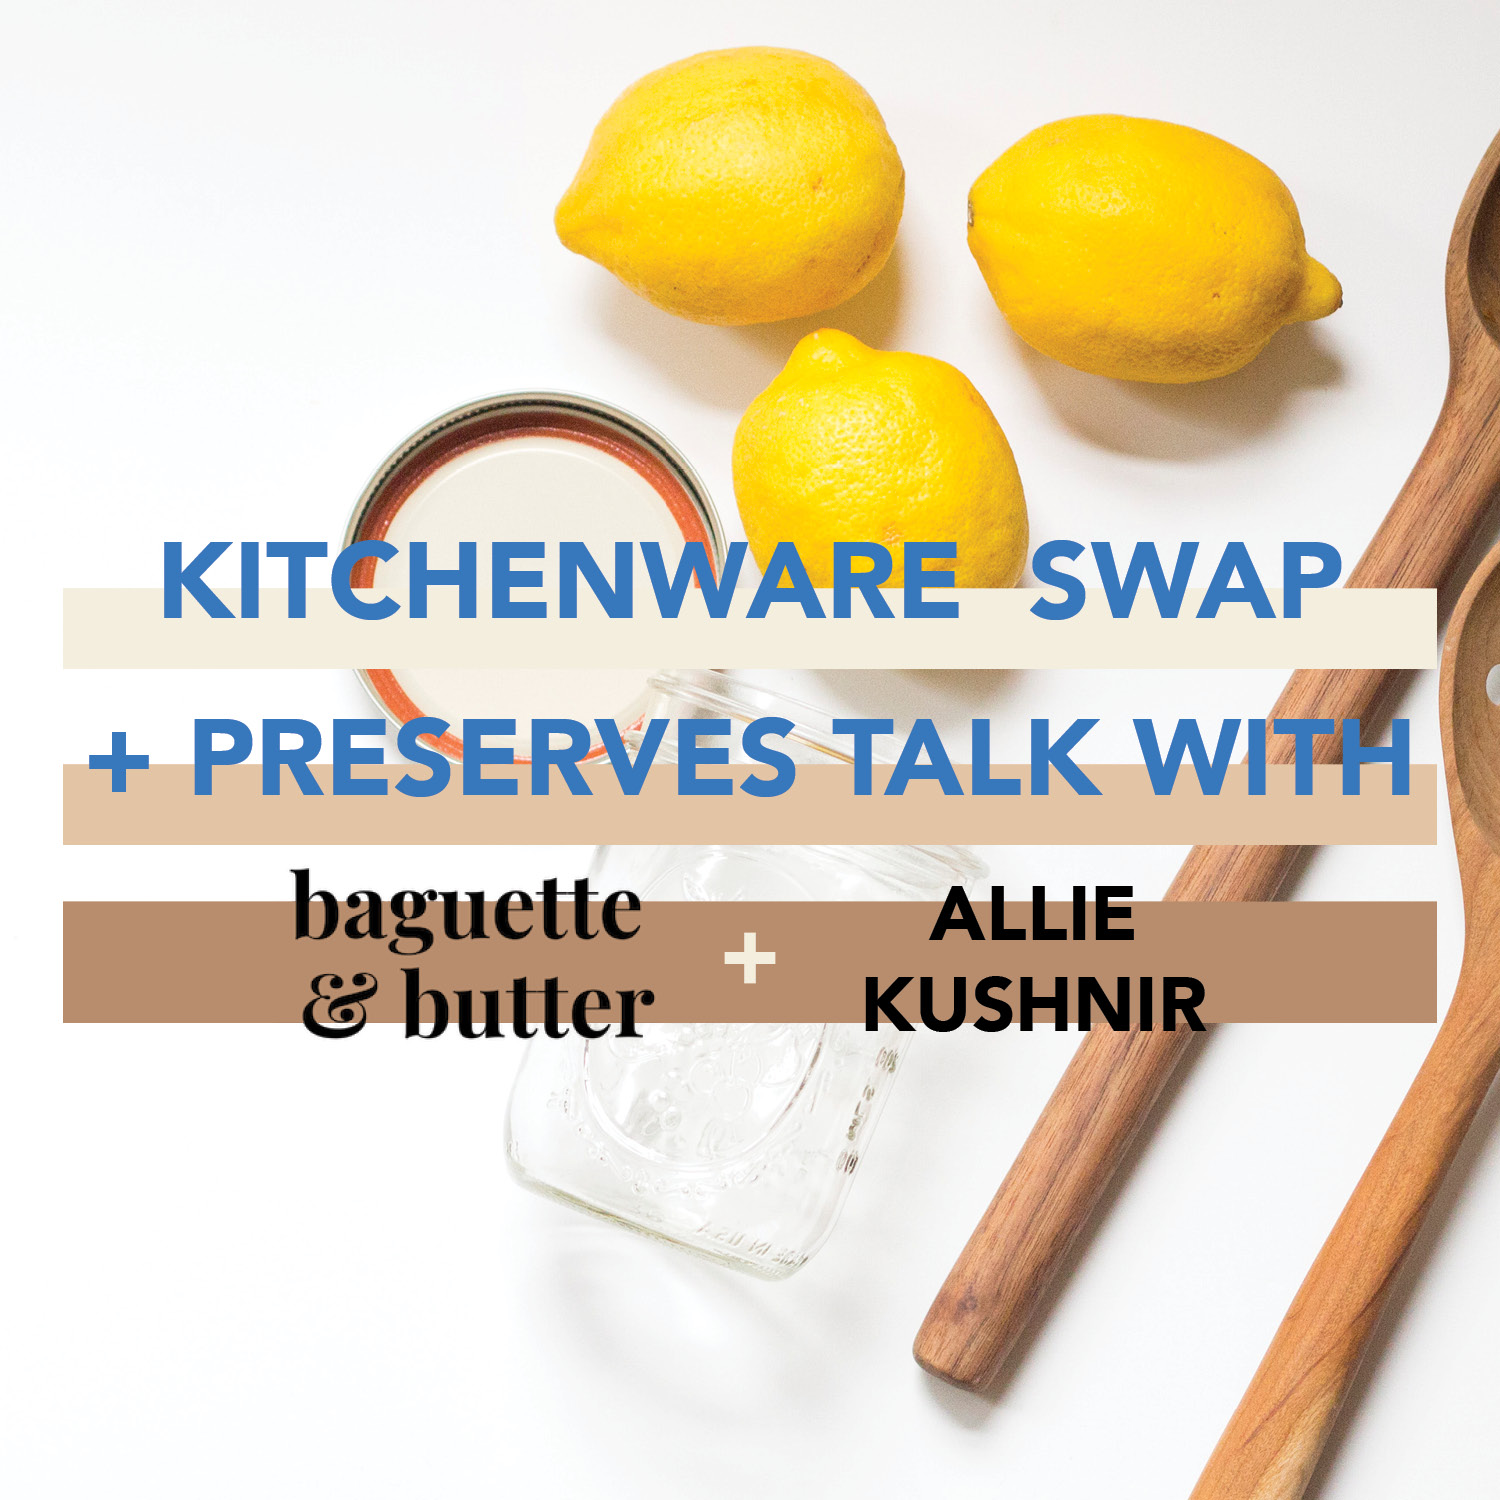 Kitchenware Swap_SQUARE.jpg